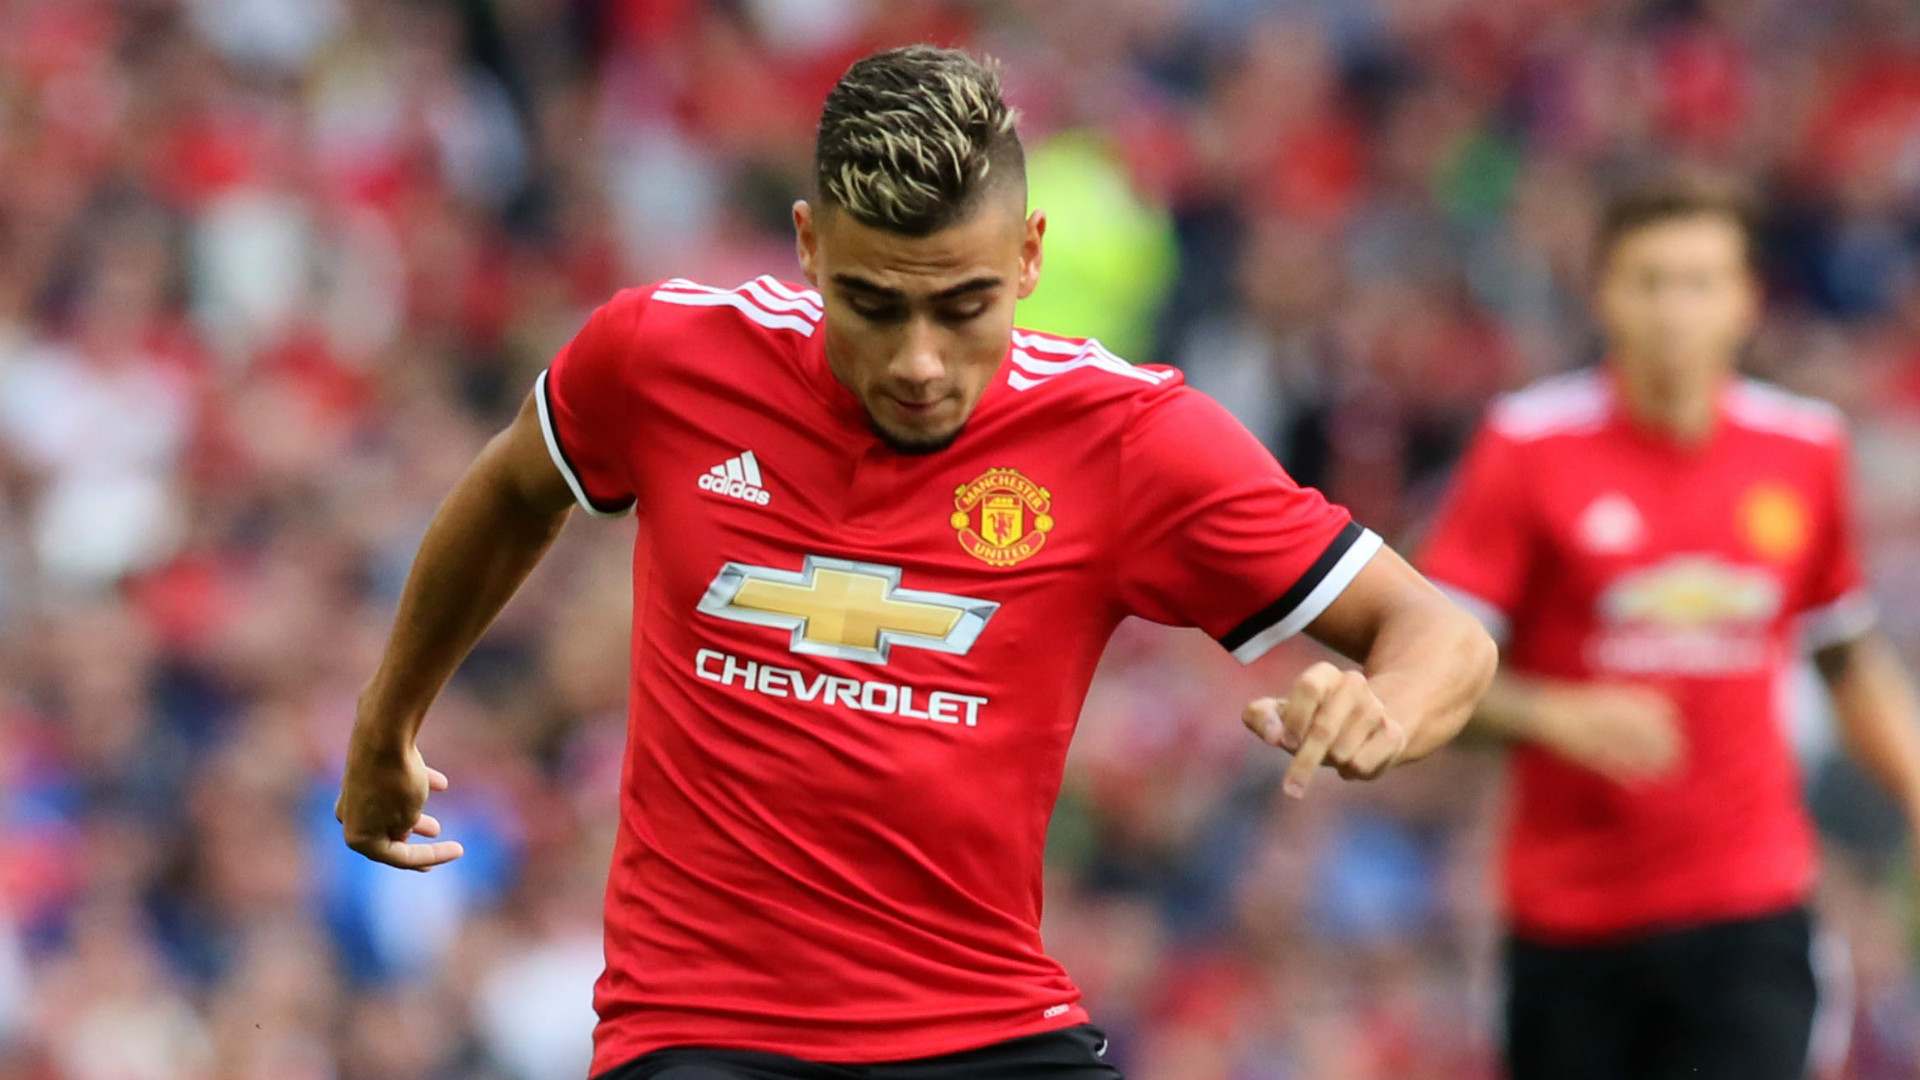 Manchester united news andreas pereira determined to make the manchester united news andreas pereira determined to make the grade at old trafford after rubbishing transfer rumours goal voltagebd Image collections